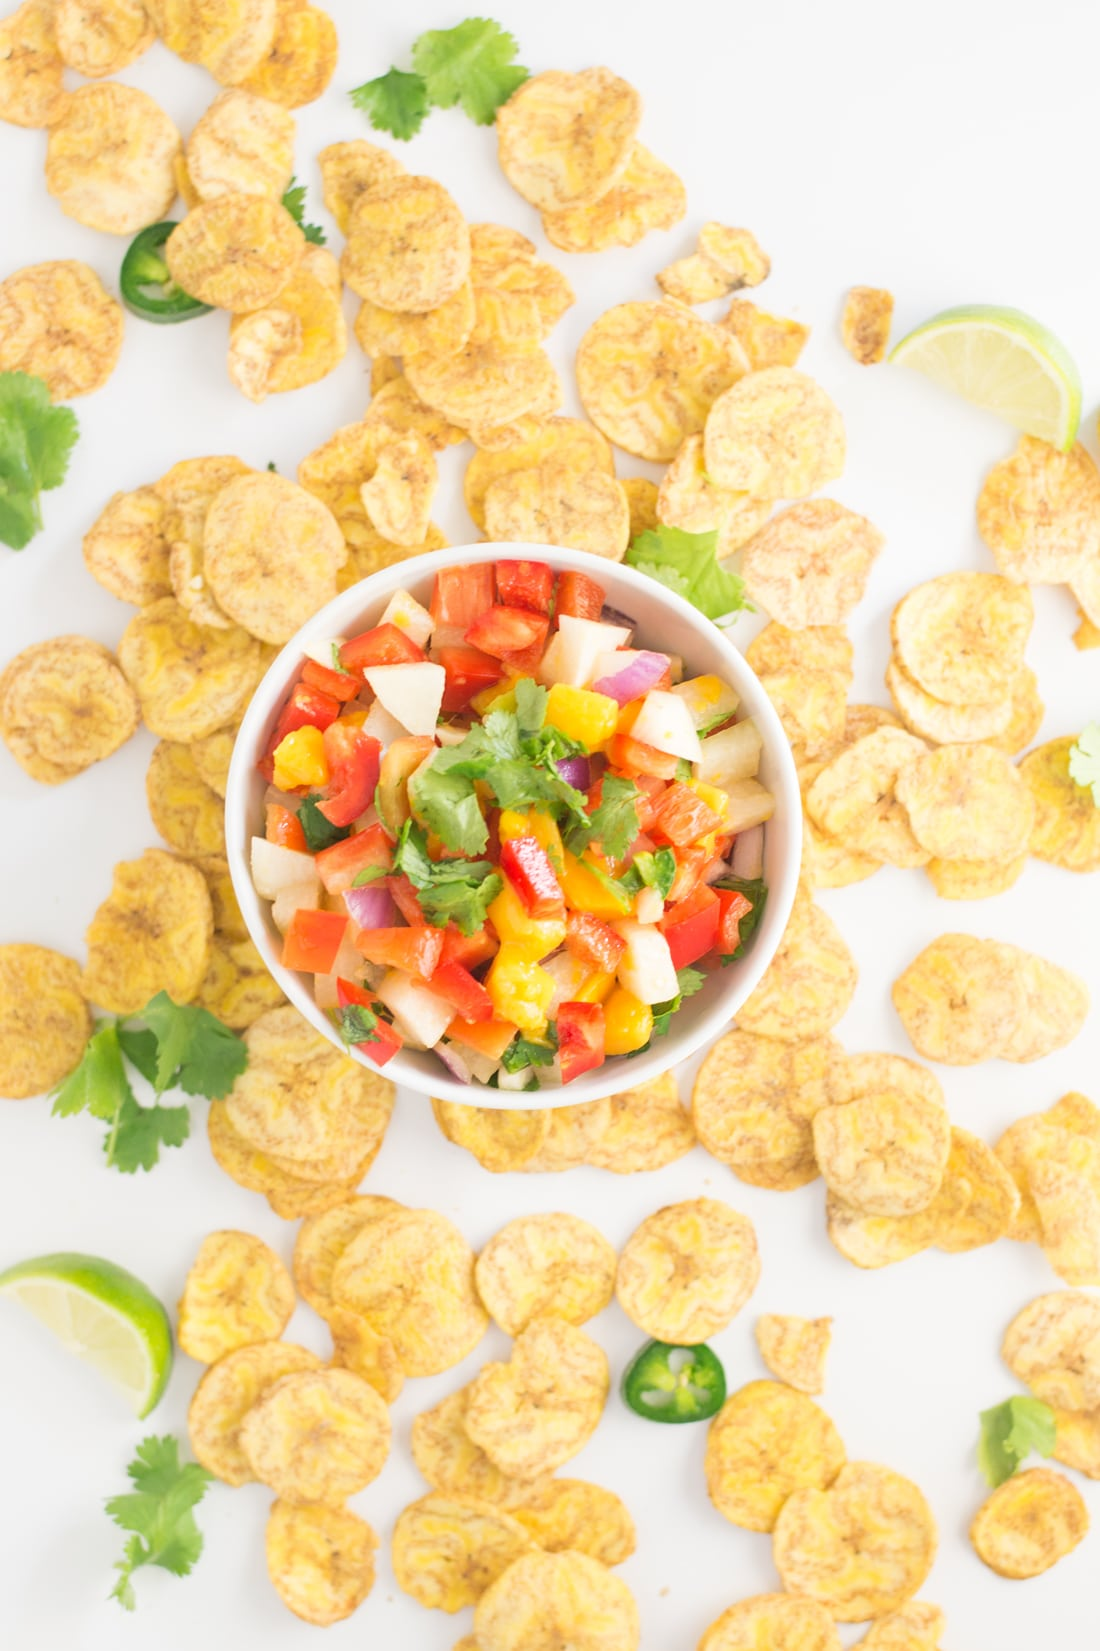 bowl of jicama salsa on white background with plantain chips and jalapenos.